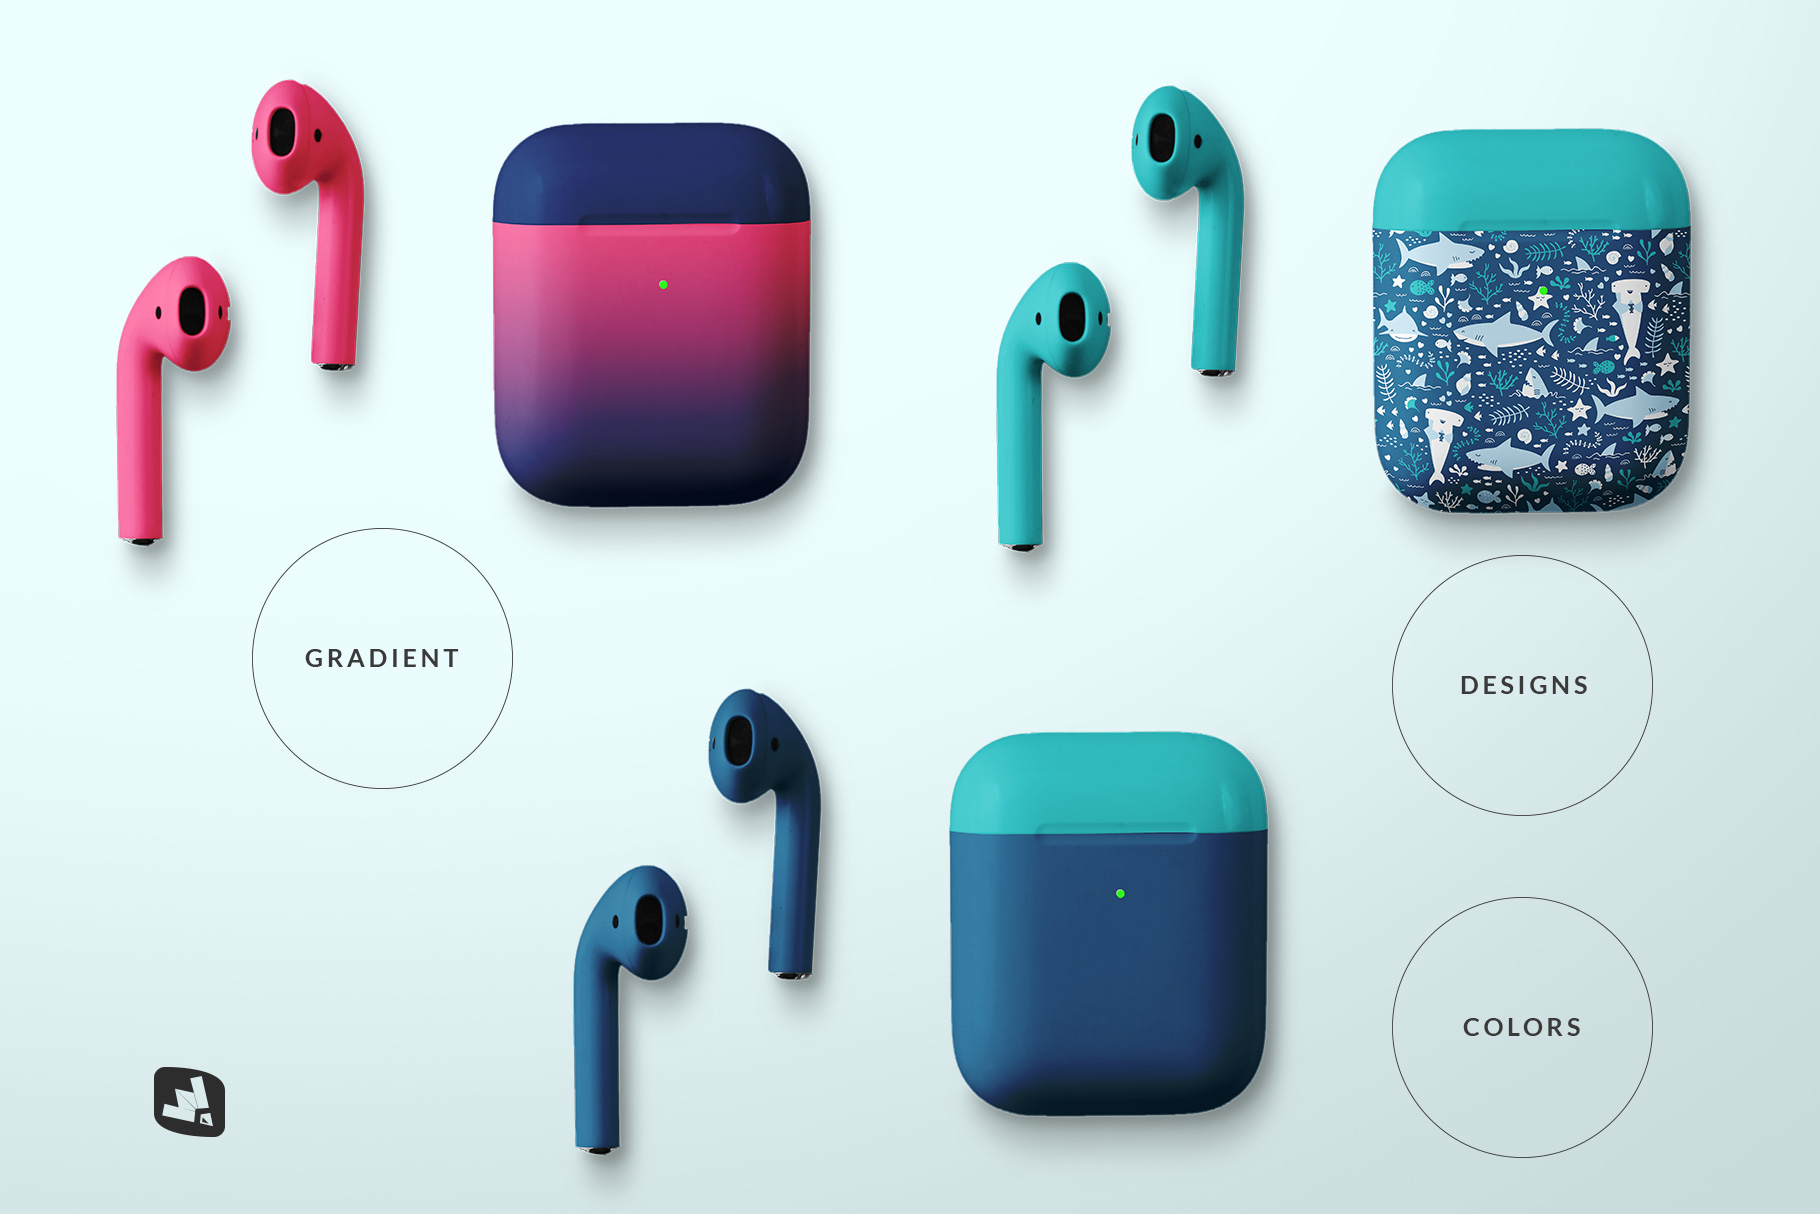 types of the top view airpod case mockup